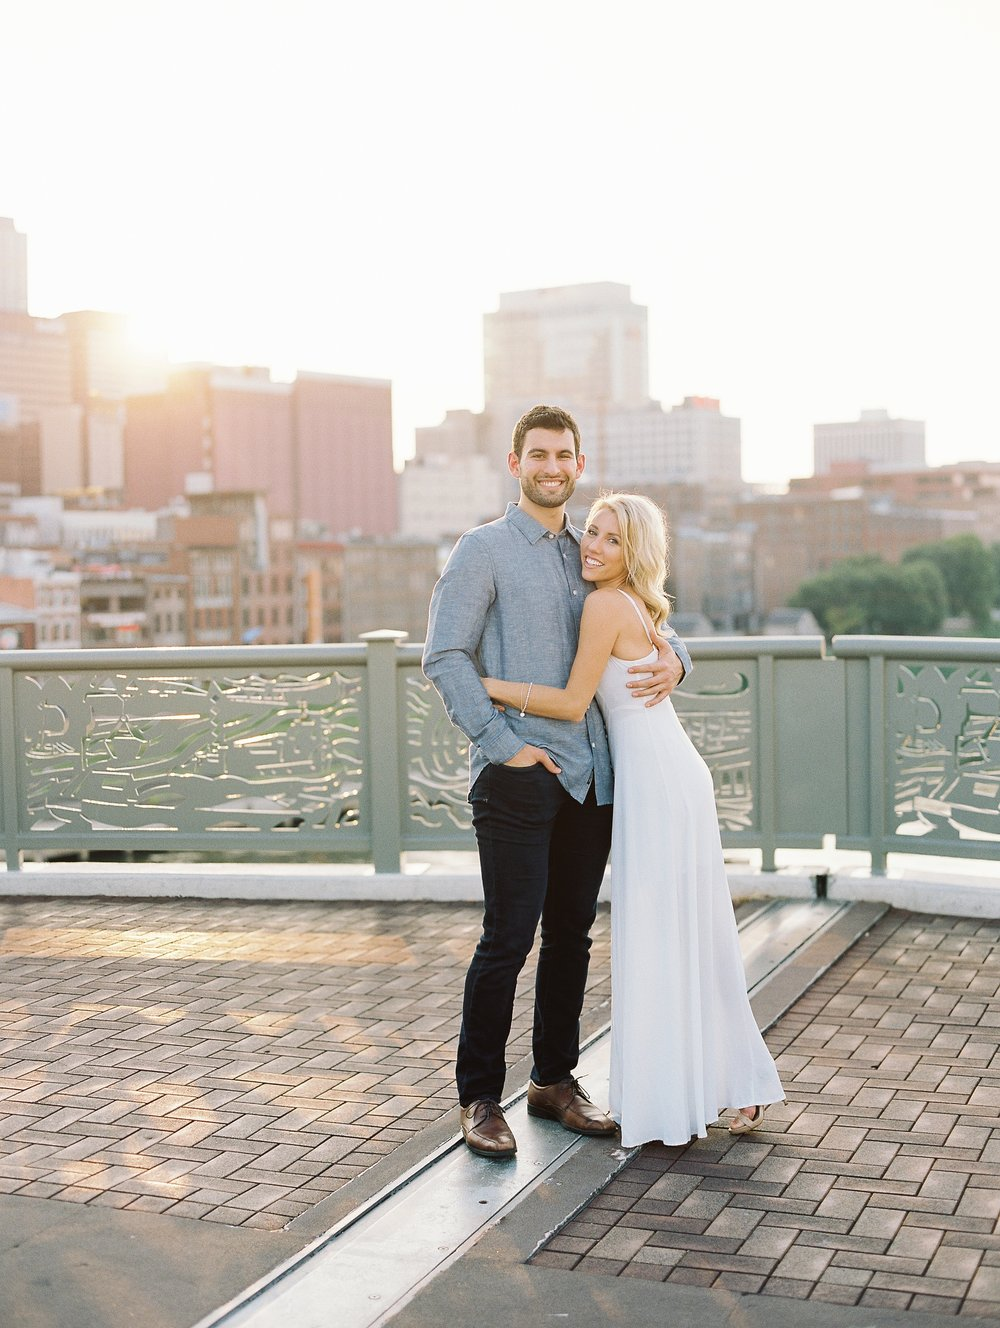 Jessica Mack and Dre Music City CMT Engagement Session Nashville_0896.jpg